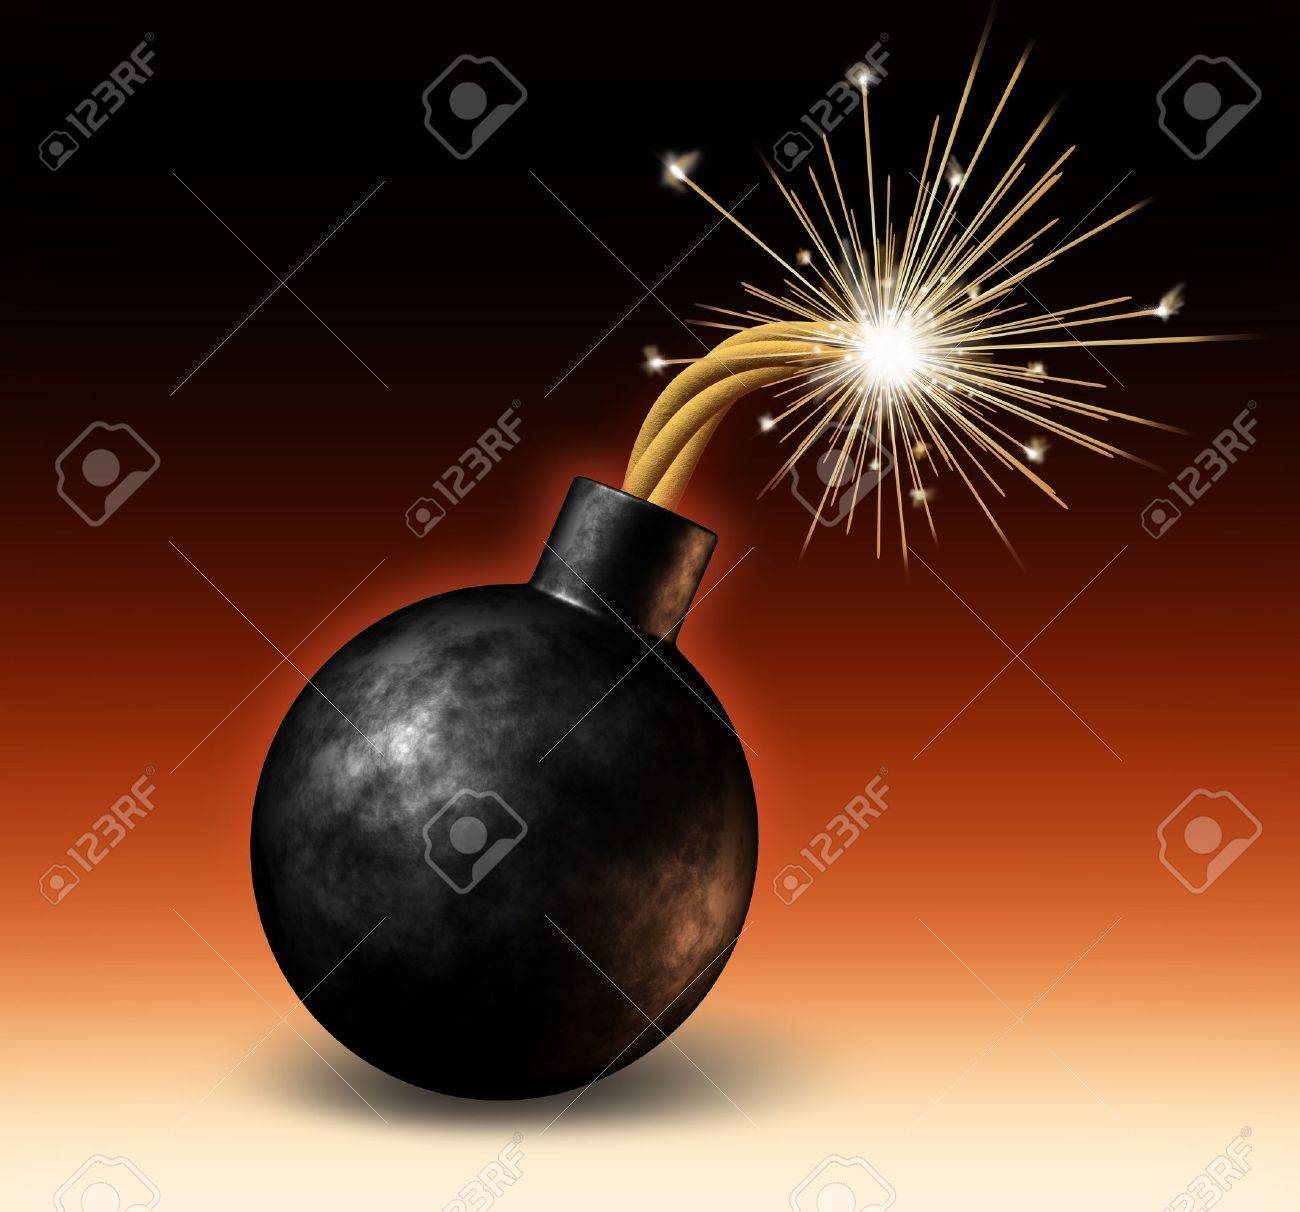 Exploding bomb with lit burning fuse with fire sparks fealing the heat as a dangerous warning of an urgent deadline with an impending explosion warning on a red and black background. Stock Photo - 11840308